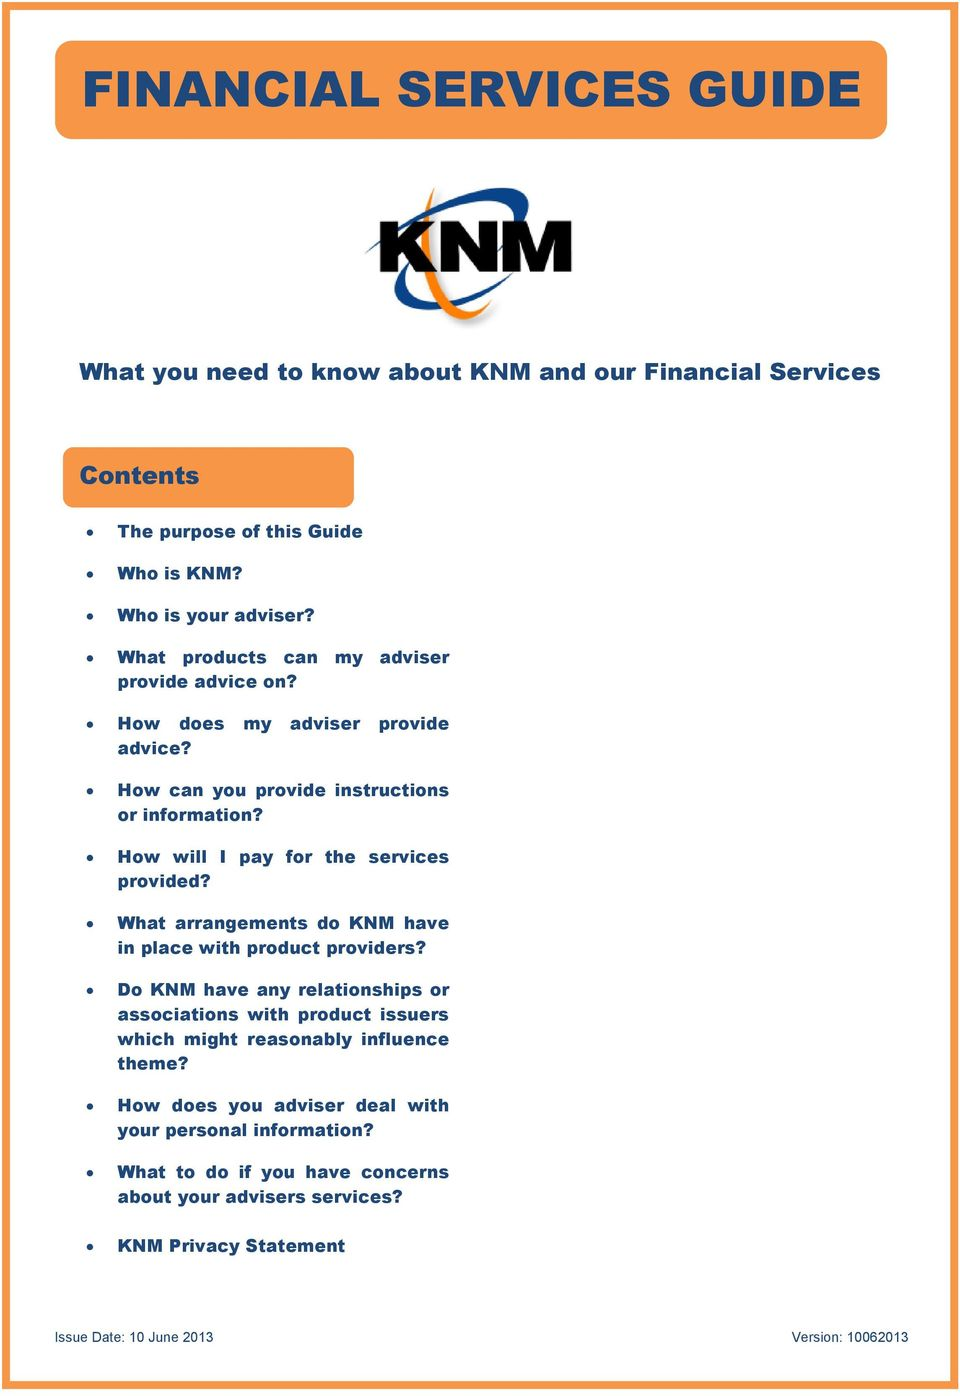 How will I pay for the services provided? What arrangements do KNM have in place with product providers?